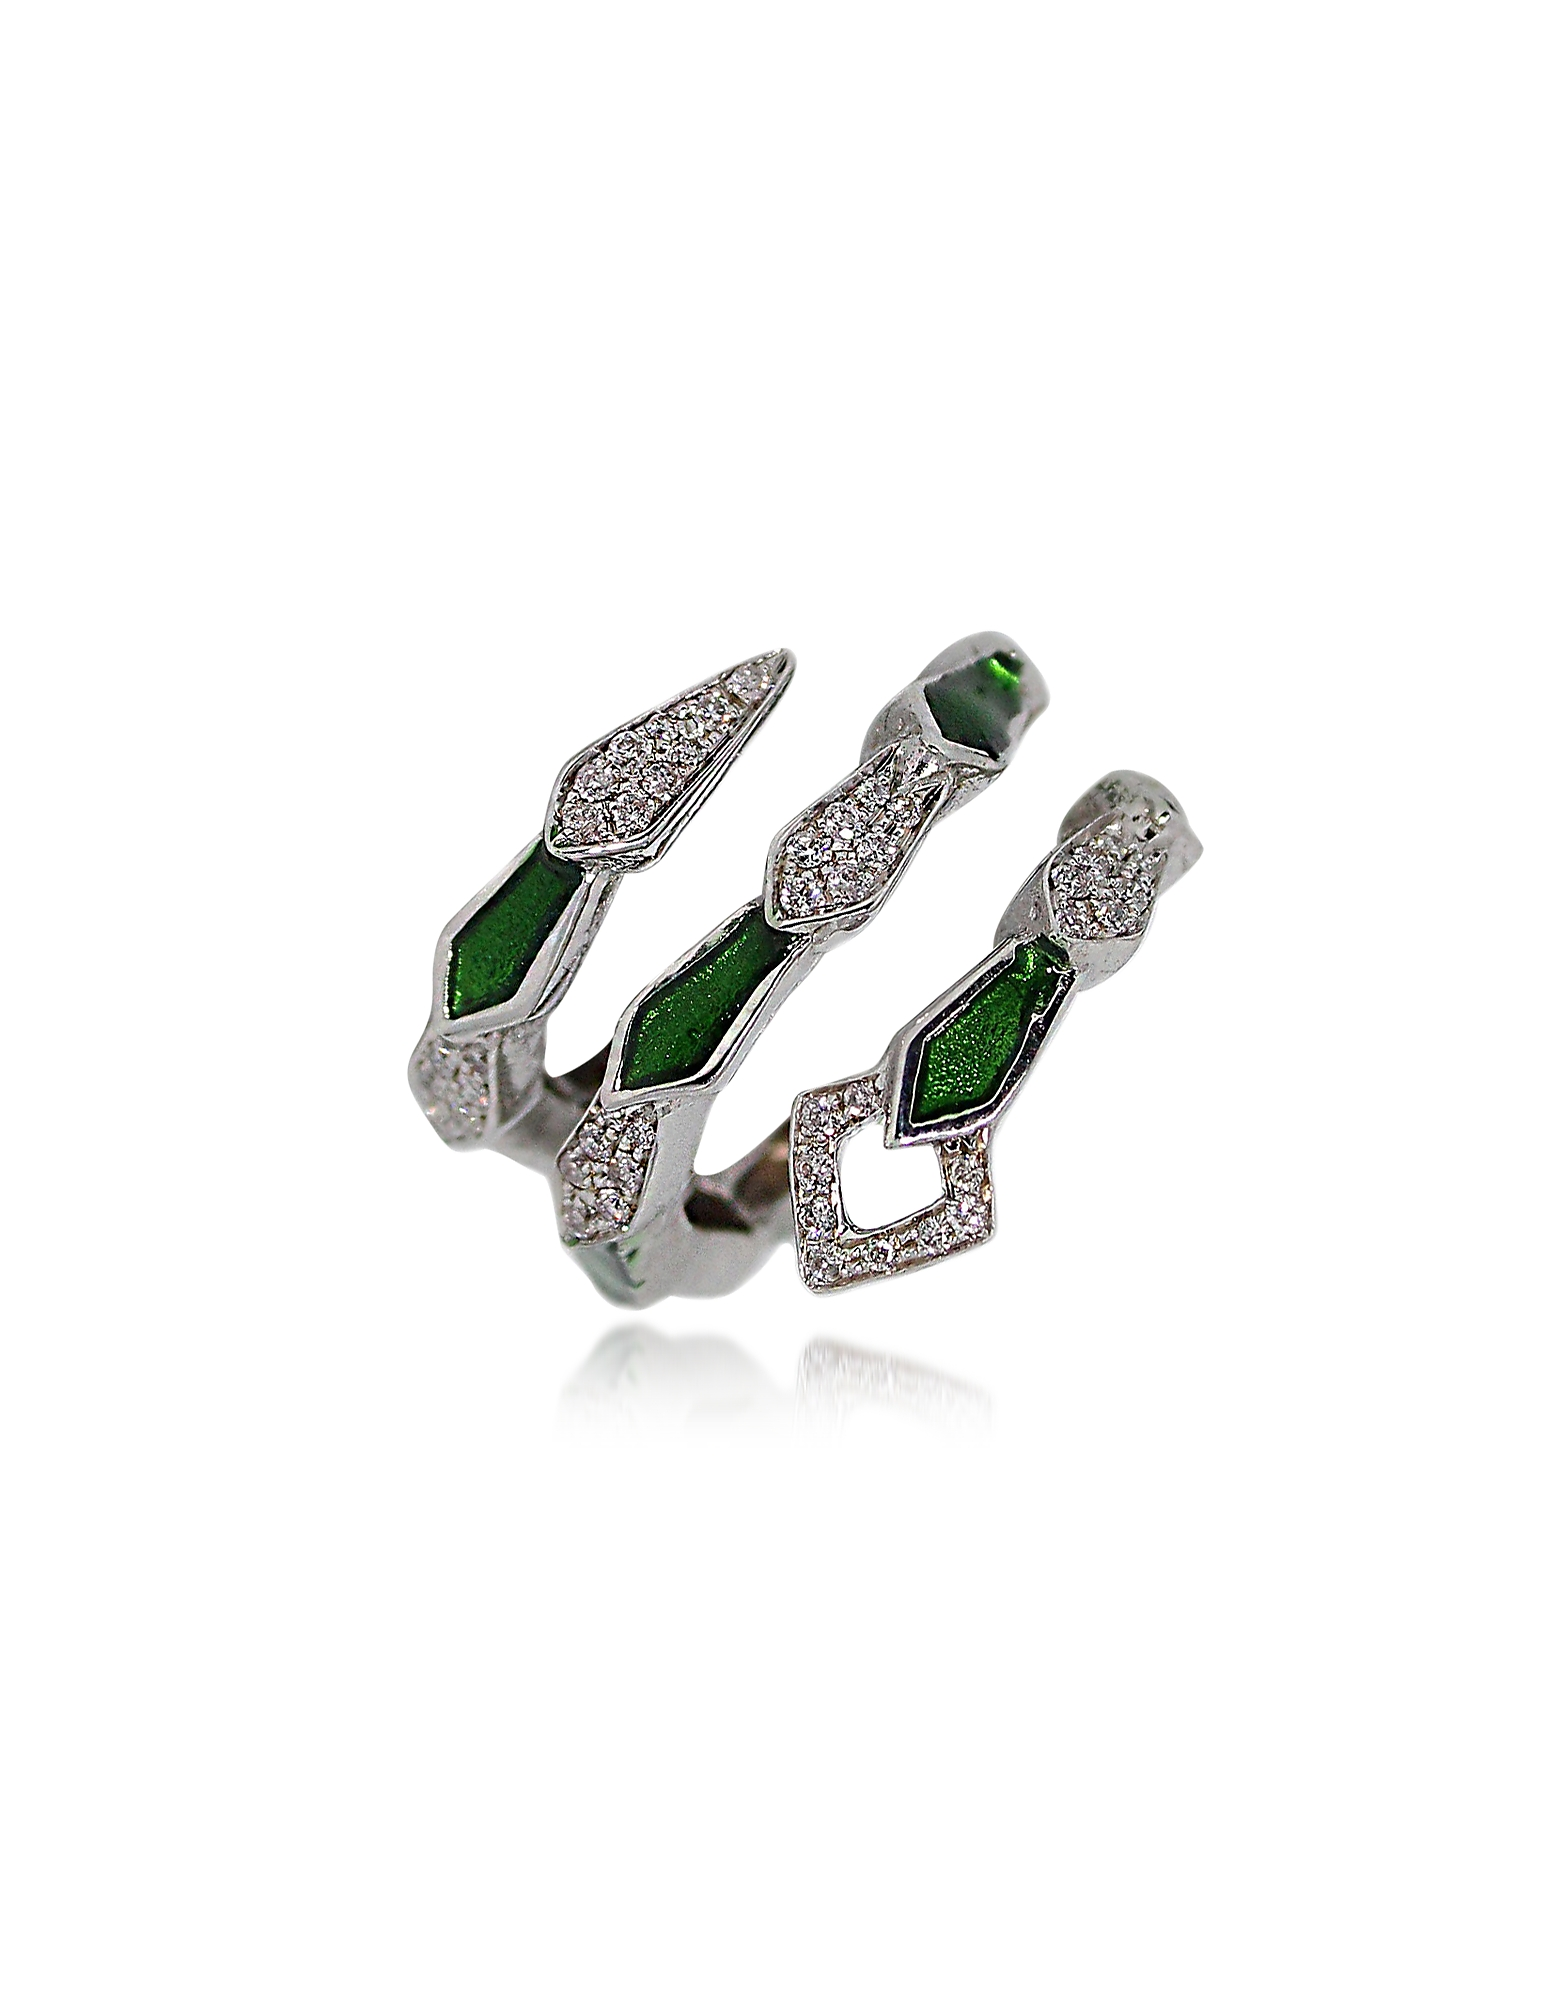 Bernard Delettrez Designer Rings, White Gold Spiral Snake Ring w/ Pavé Diamonds & Green Enamel